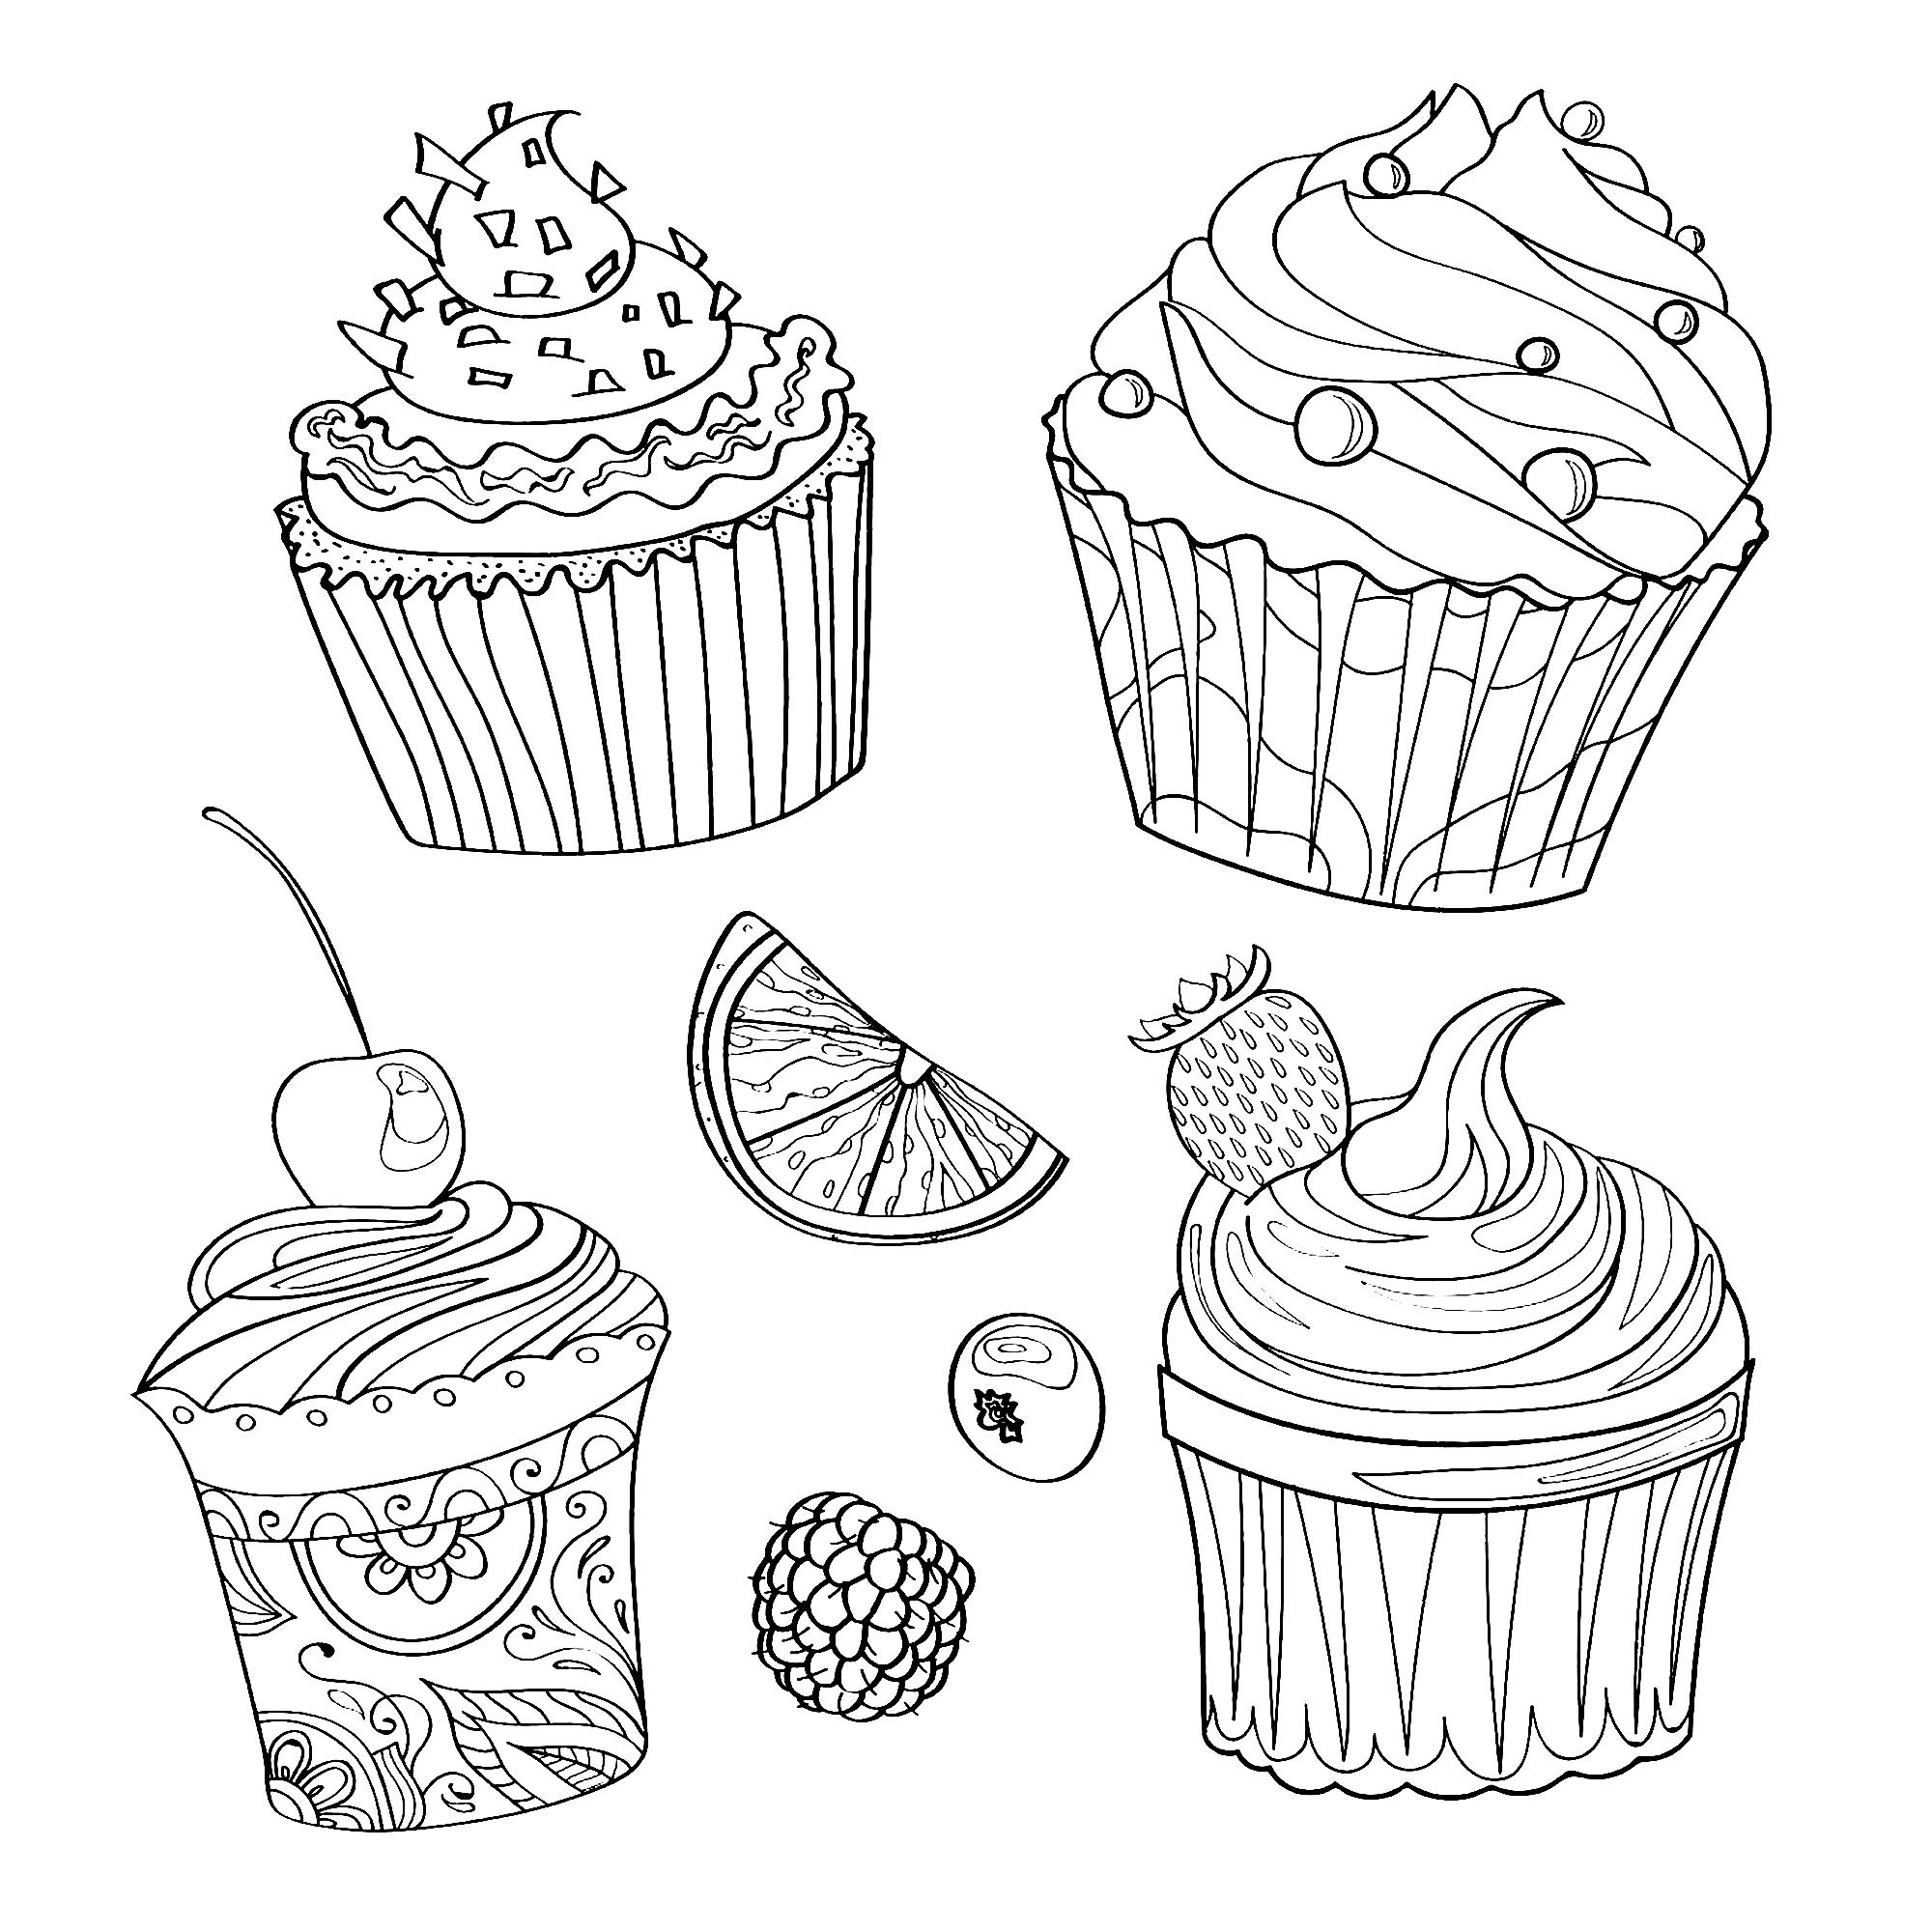 Cupcakes and cakes to color for kids Cupcakes And Cakes